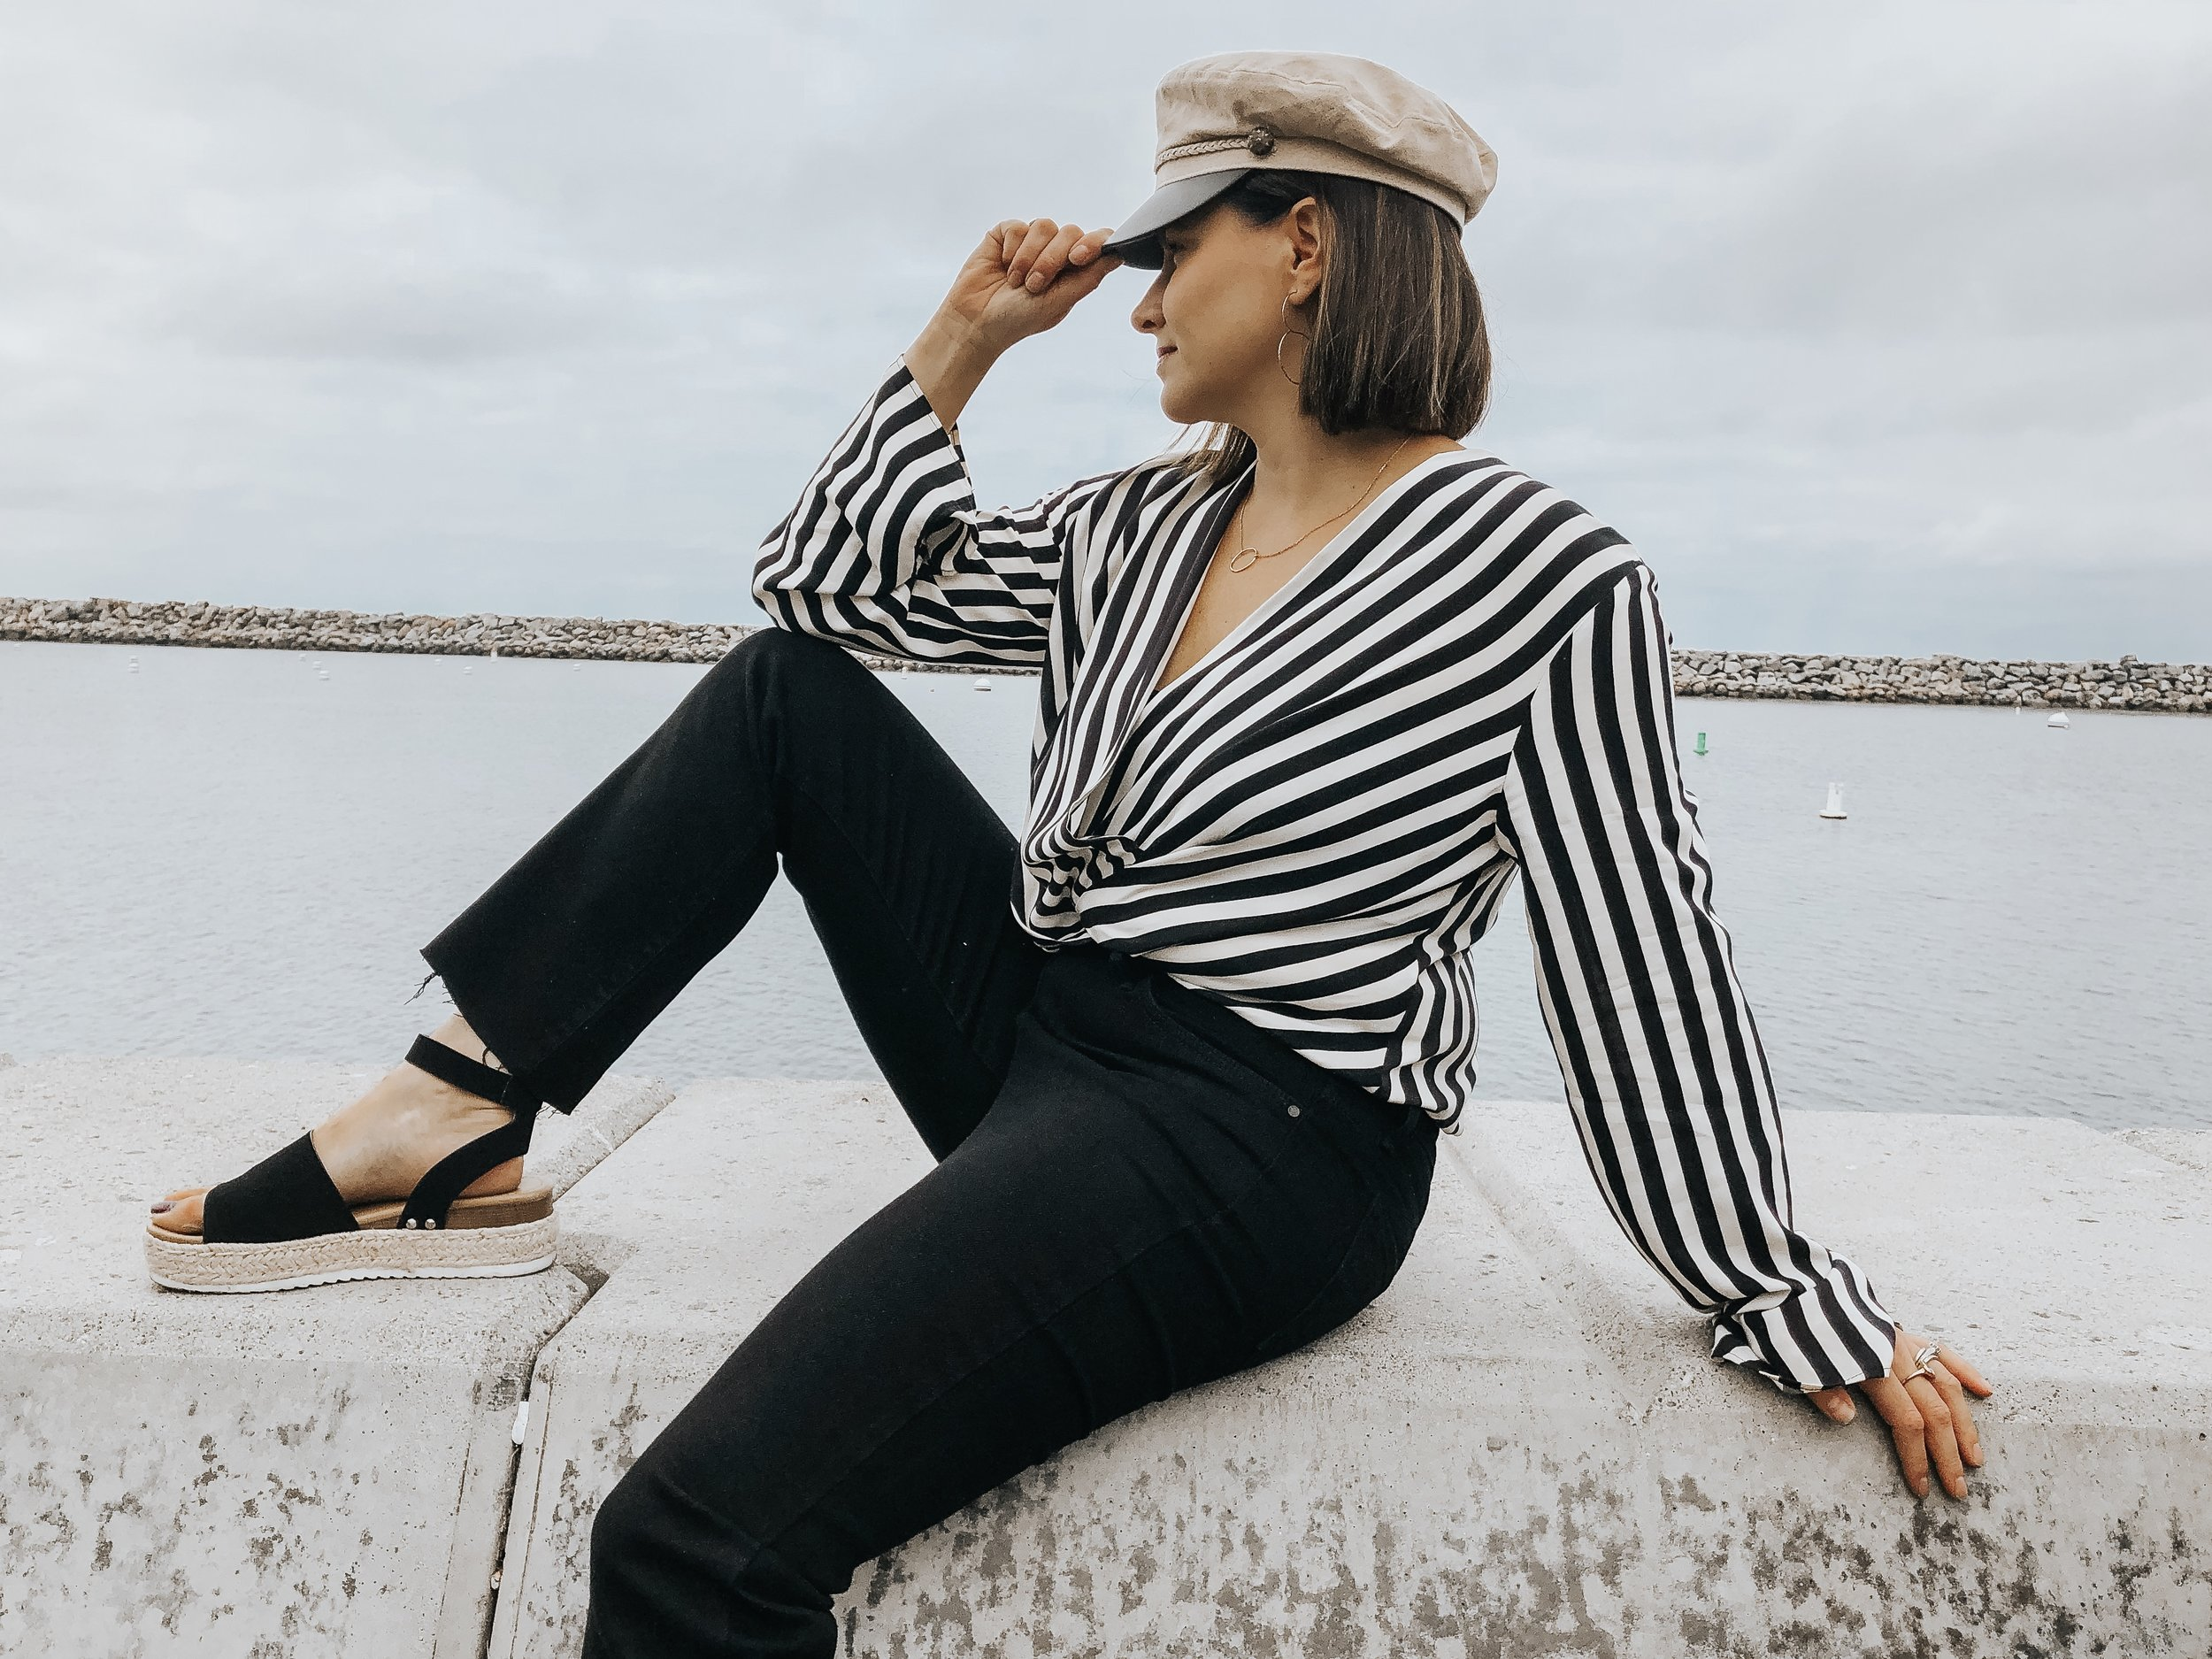 HATS ON HATS ON HATS - Now we all know doing your hair every morning is the WORST. This year, we are overcoming the greasy mess with a stylish hat. Not only does it save time on styling the 'Do, but also adds some flavor to your outfit